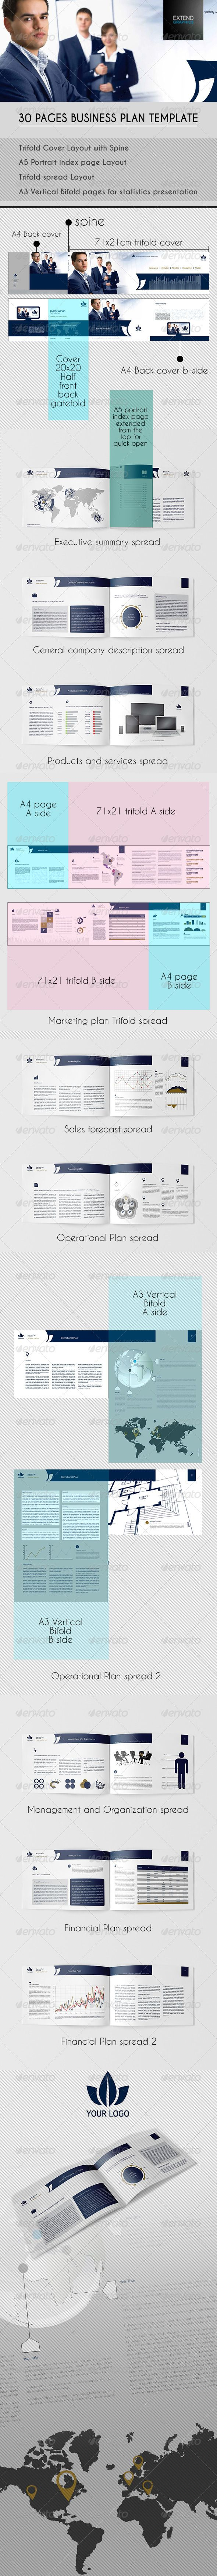 30 Pages Business Plan Template